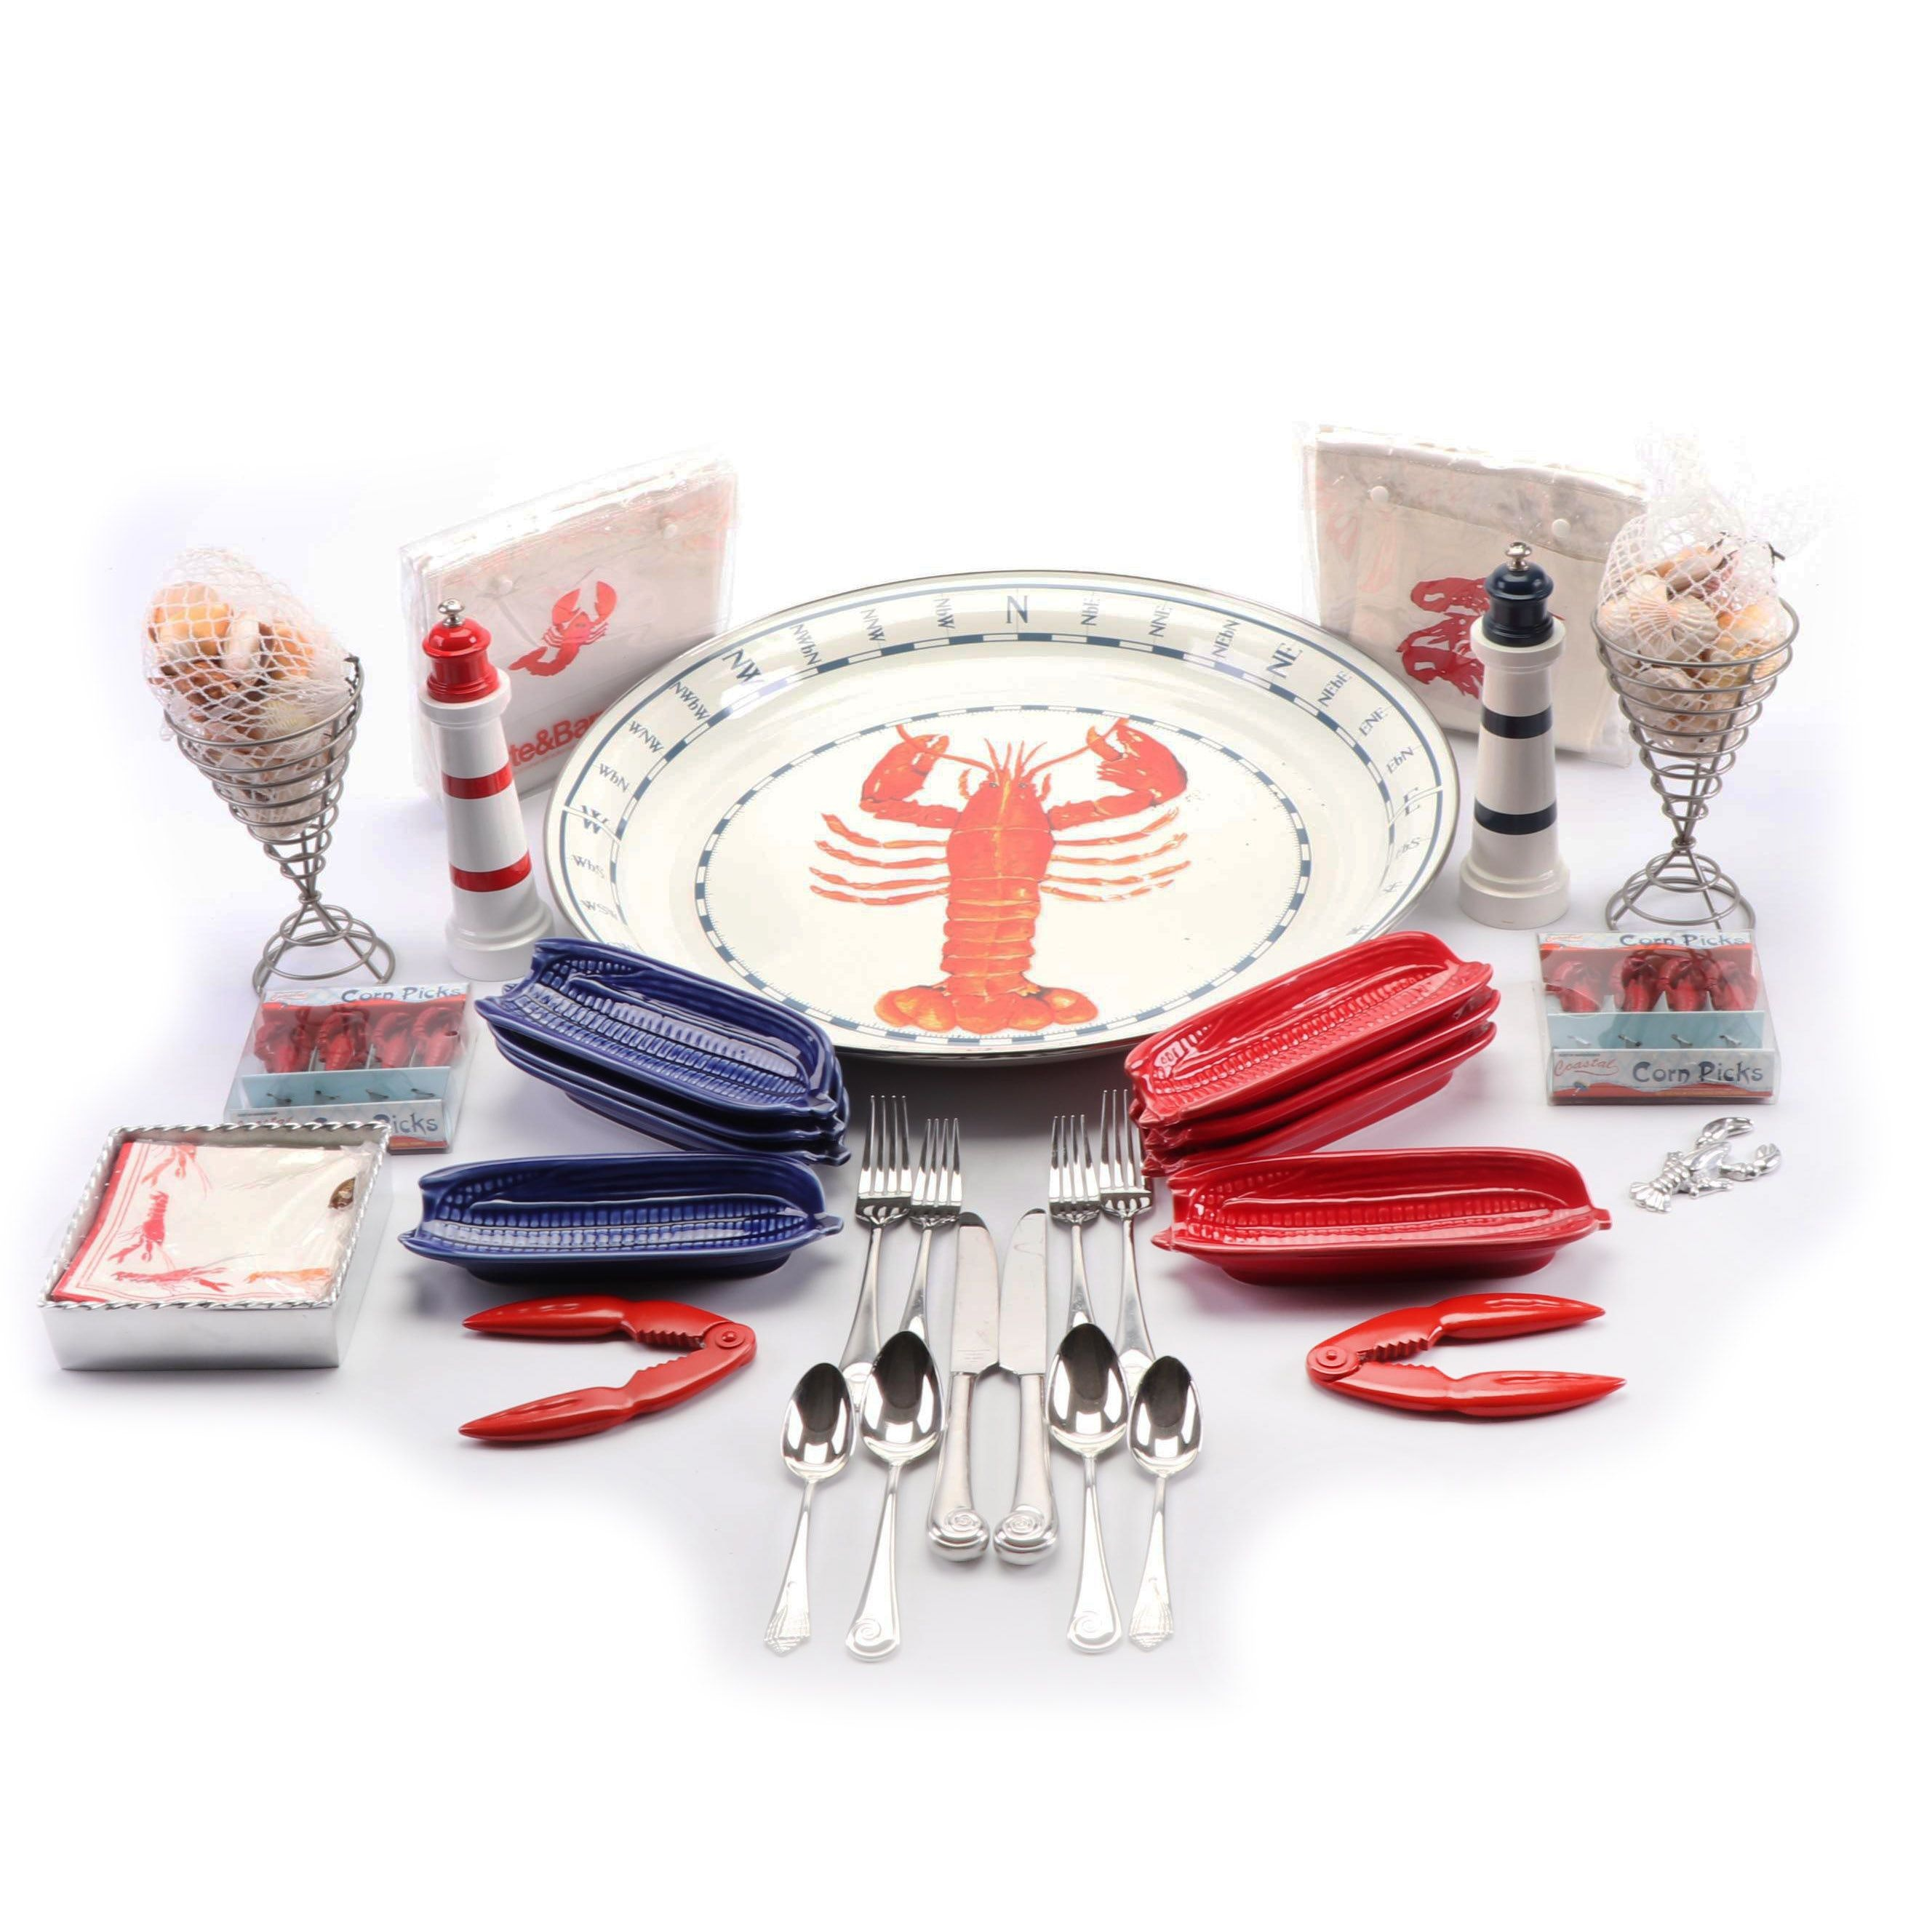 Lobster Themed Ceramic Dinnerware with Reed & Barton Stainless Utensils